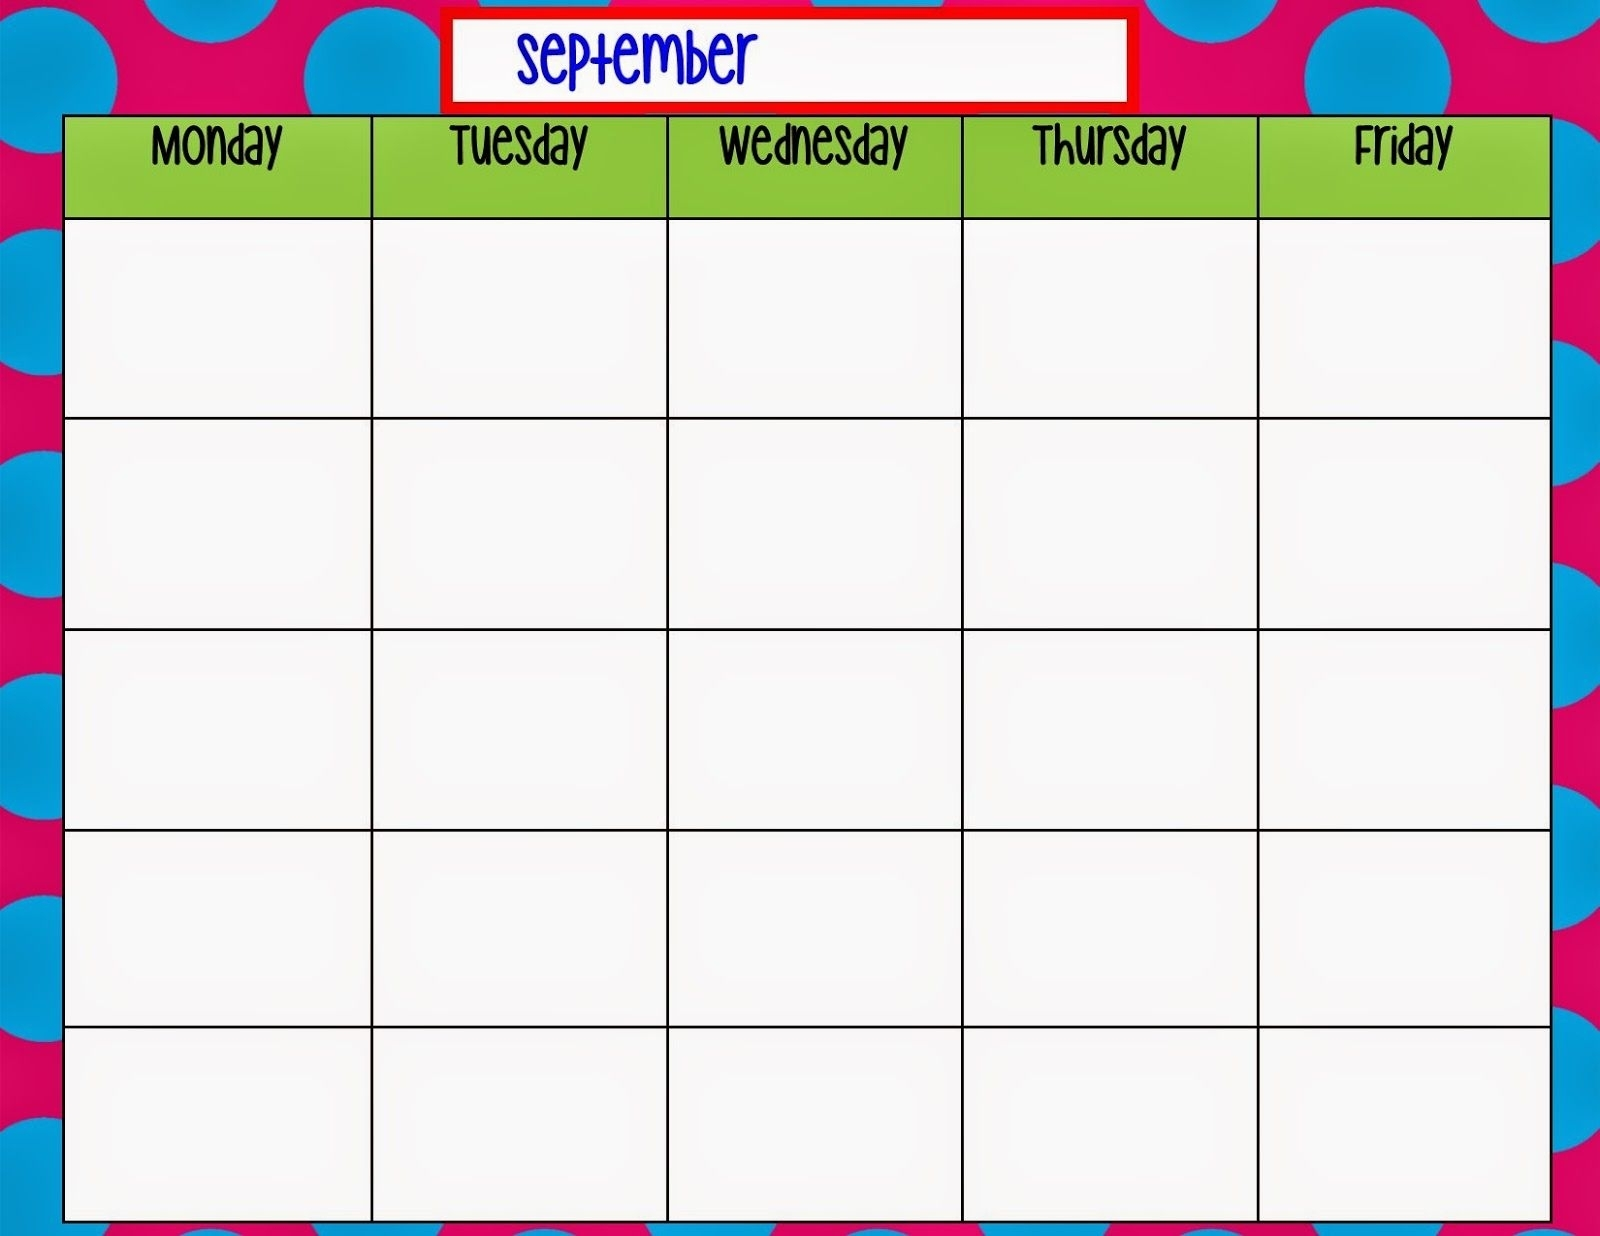 Monday Through Friday Calendar Template | Preschool | Printable pertaining to Weekly Schedule Monday Through Friday